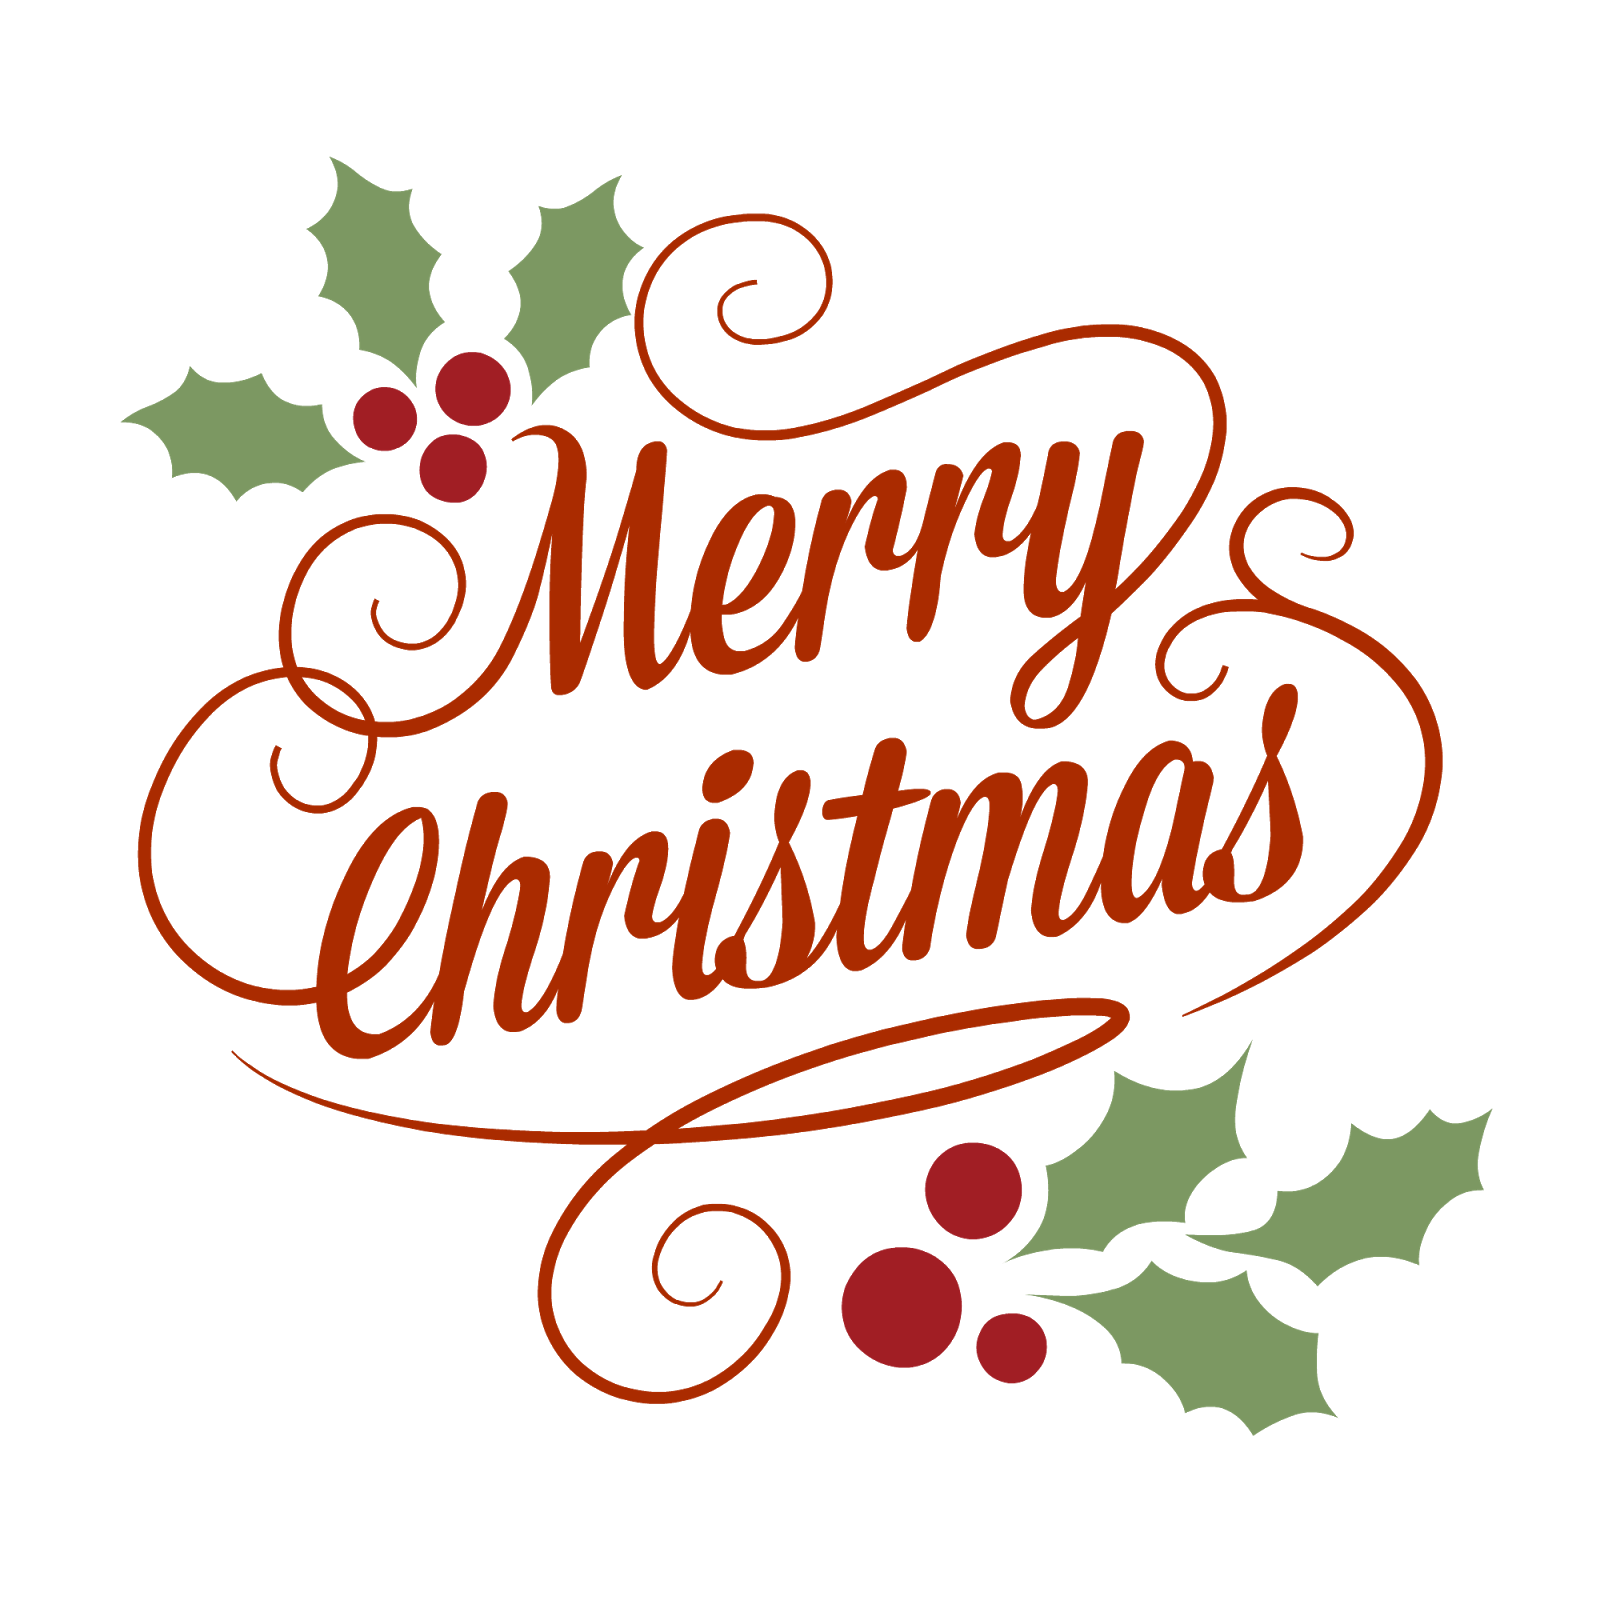 Merry Christmas Merry Christmas Text Png